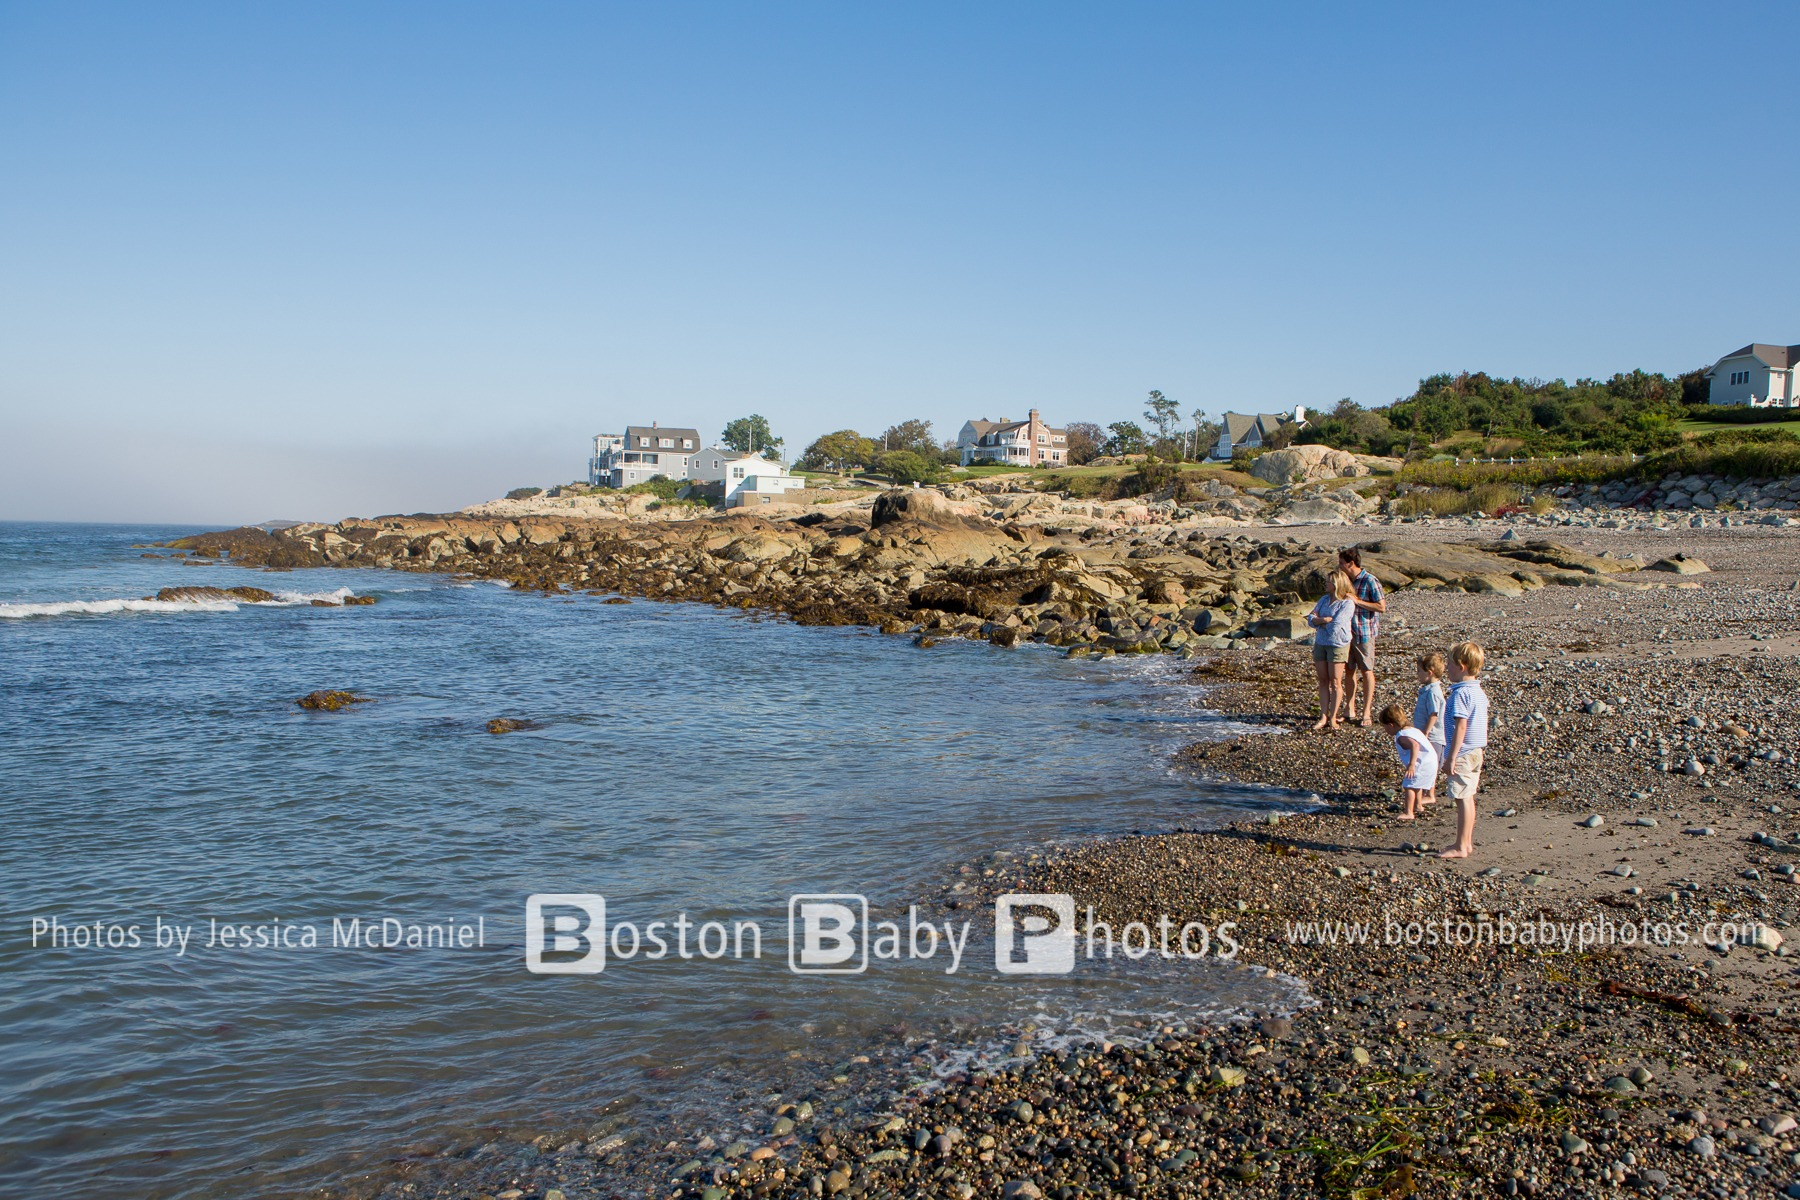 Black Rock Beach, MA Cohasset Beach Family Photoshoot – Family Fun in the Sun